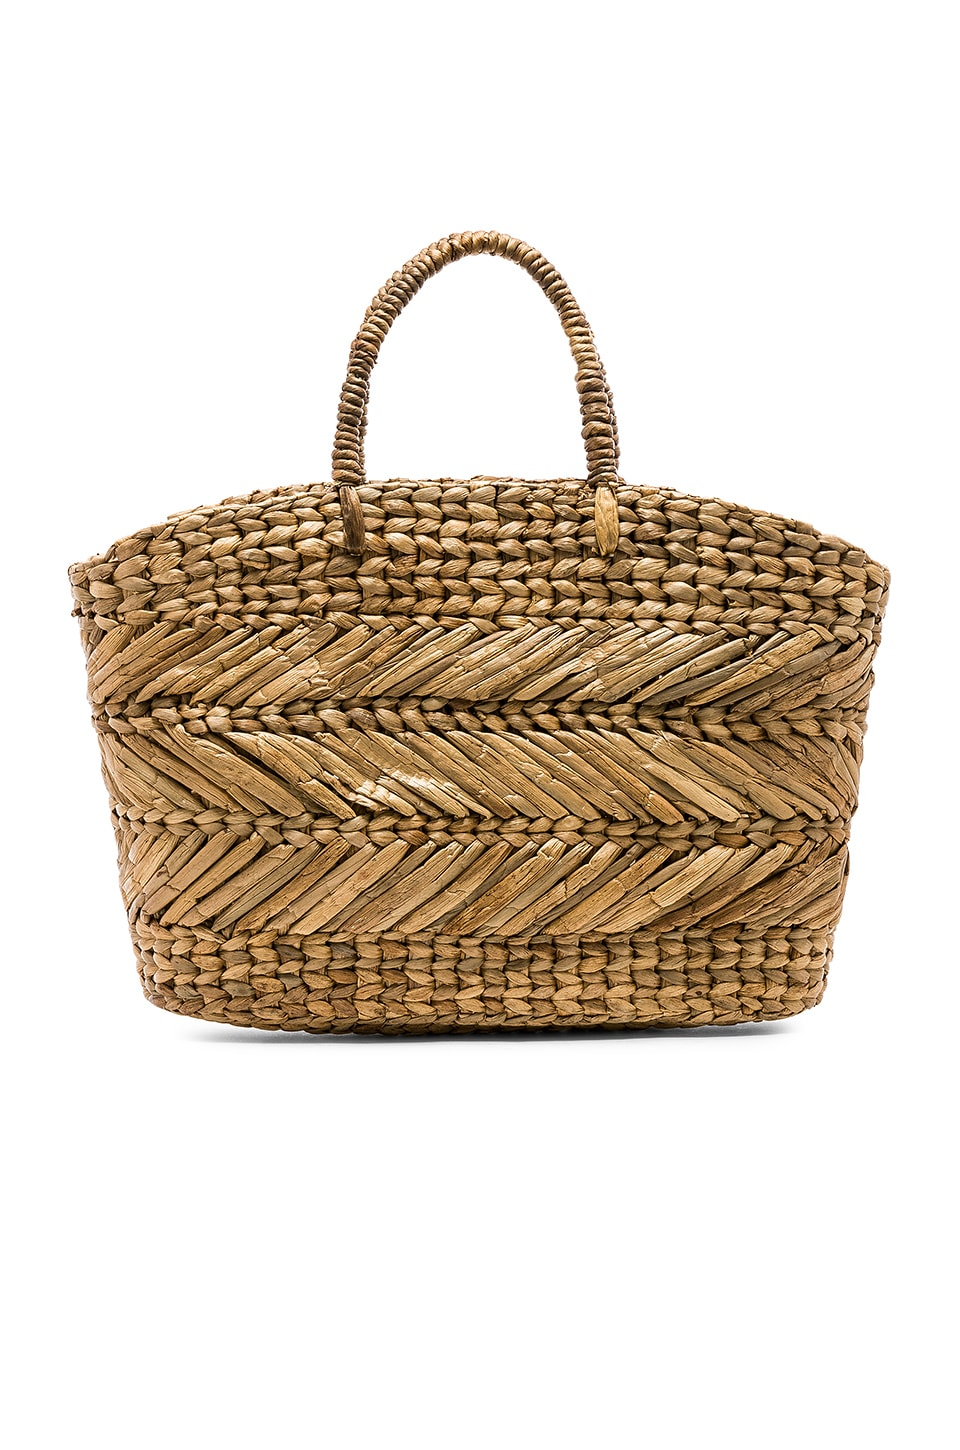 ellen & james Corfu Beach Basket Bag in Natural